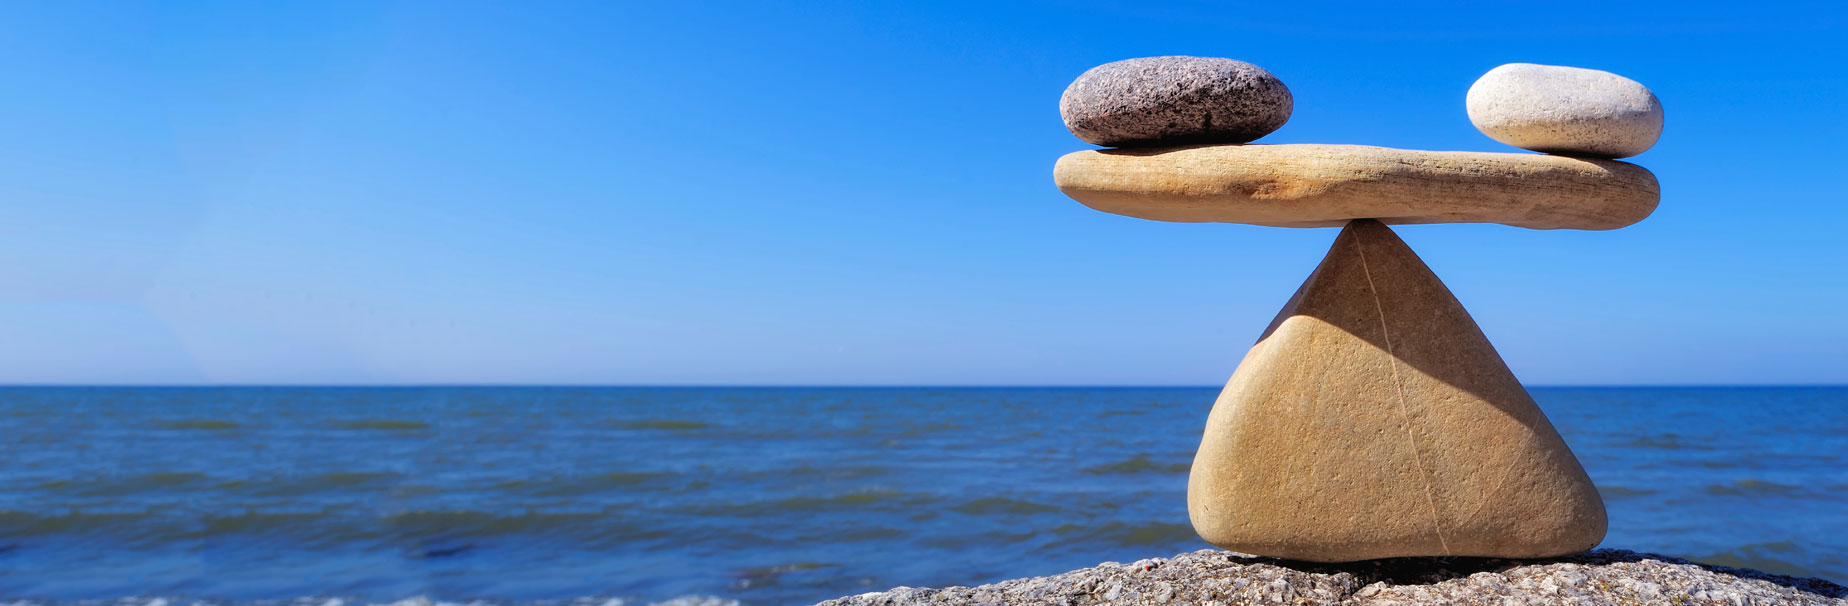 Rocks balanced on top of other rocks to show how HSA administrators can help your employees take control of health care costs